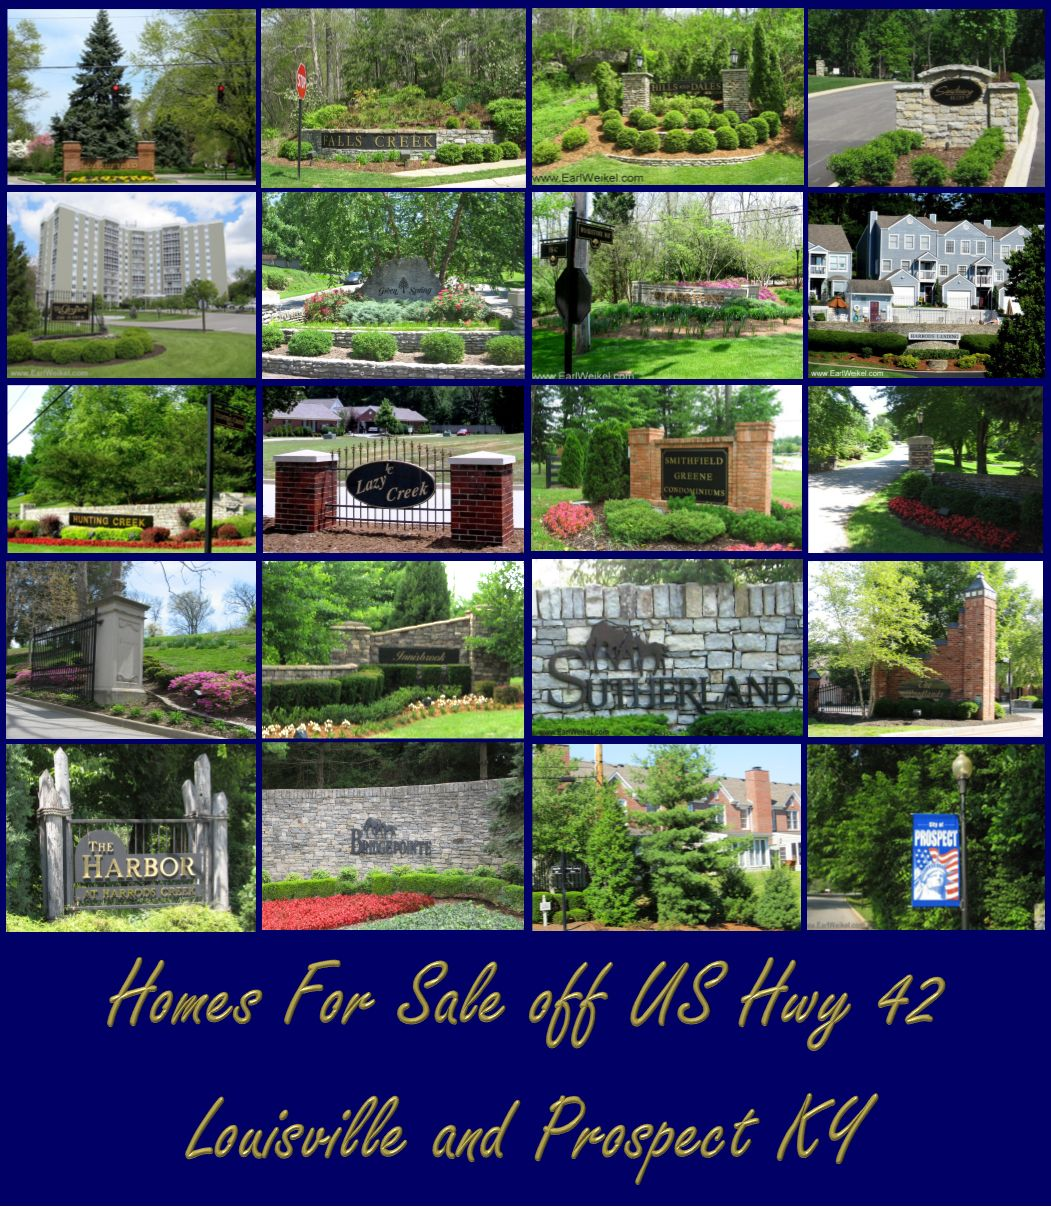 Find Houses, Condos and Patio Homes For Sale off US Hwy 42 ...